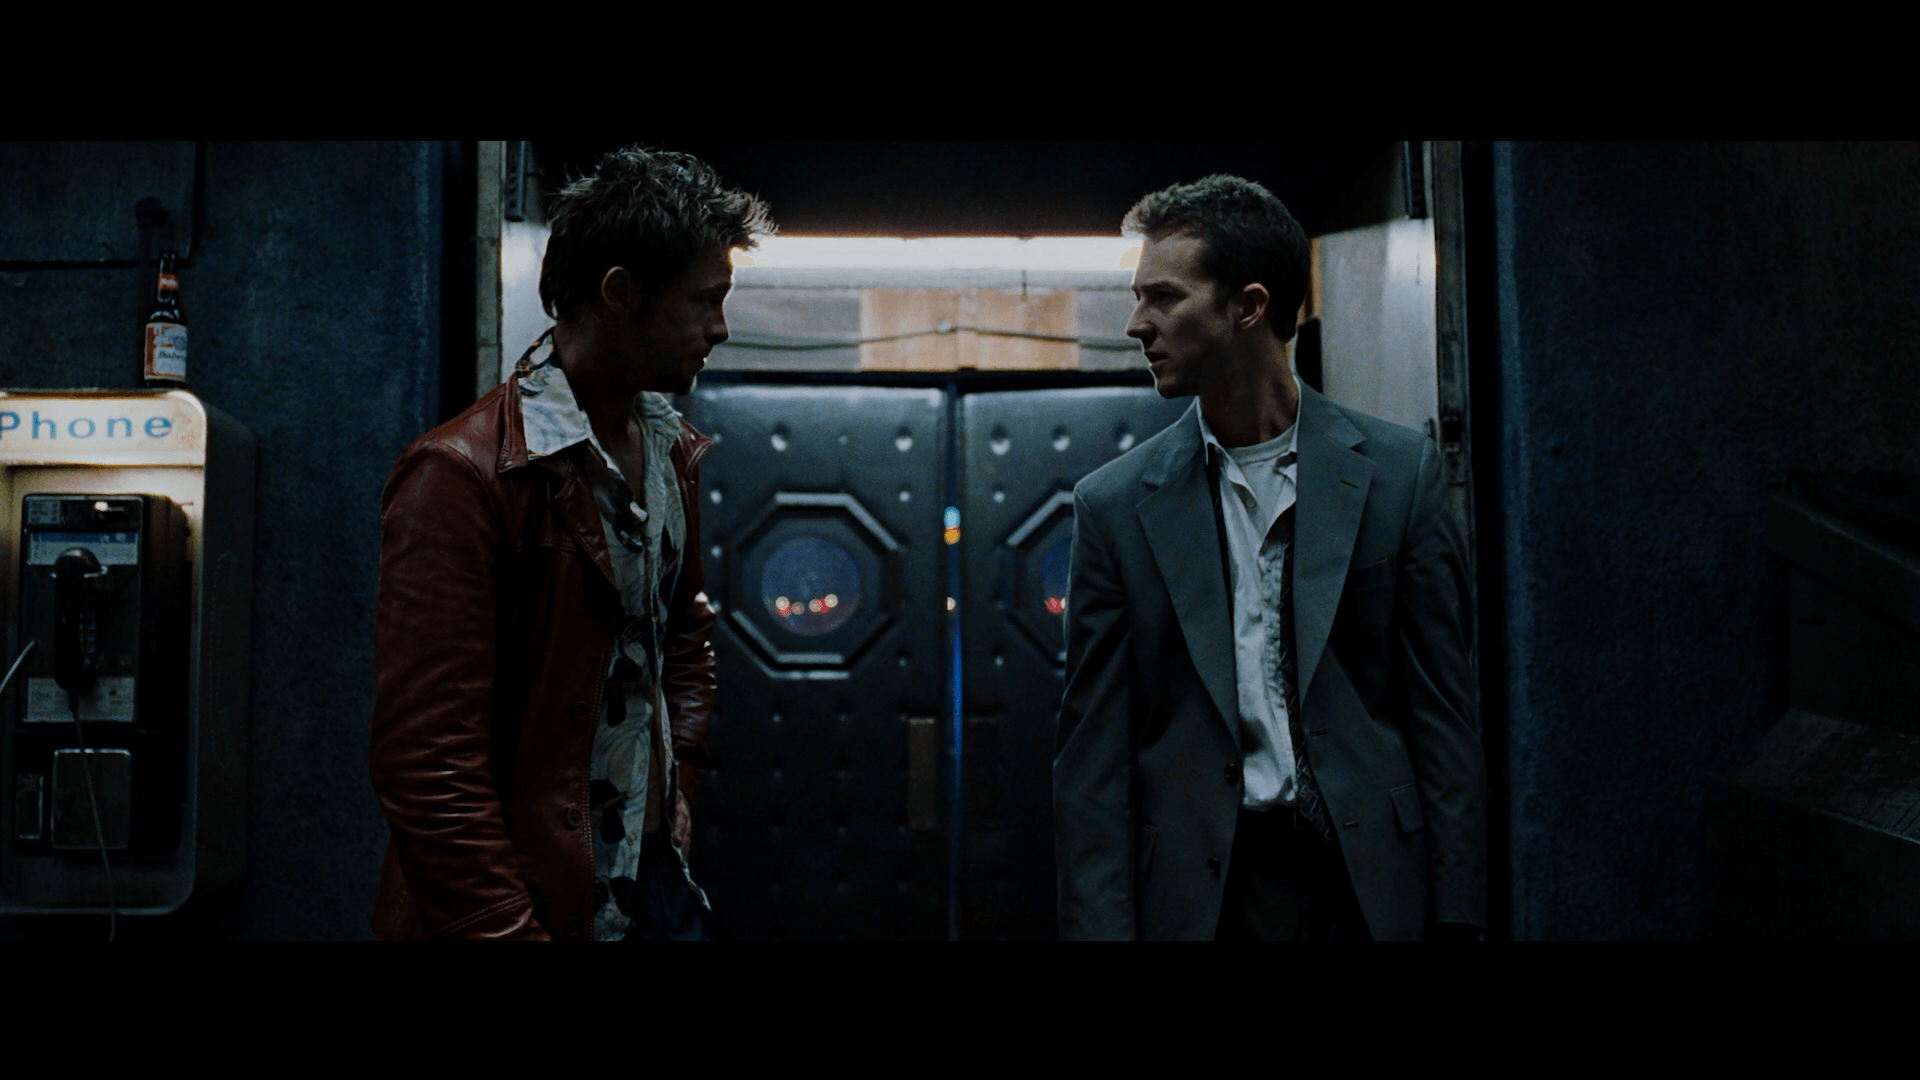 film review of fight club Our reviews stuart jeffries he gets knocked down, but he gets up again author chuck palahniuk talks to stuart jeffries about writing fight club, and his even darker novels.